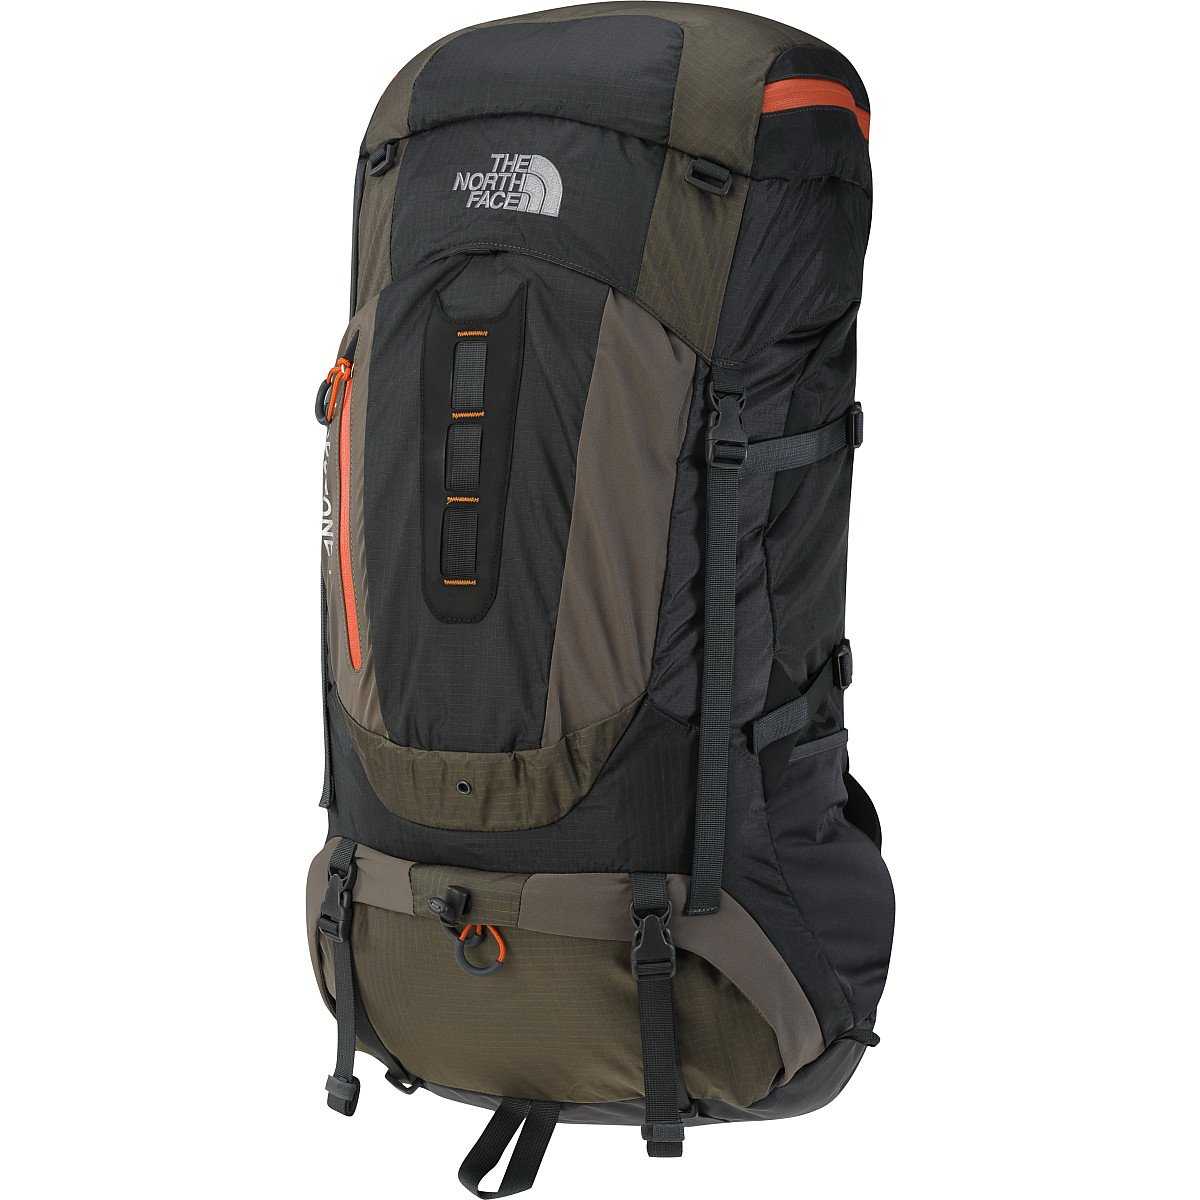 def406810 THE NORTH FACE Crestone 75 Internal Frame Pack: Amazon.co.uk: Sports ...